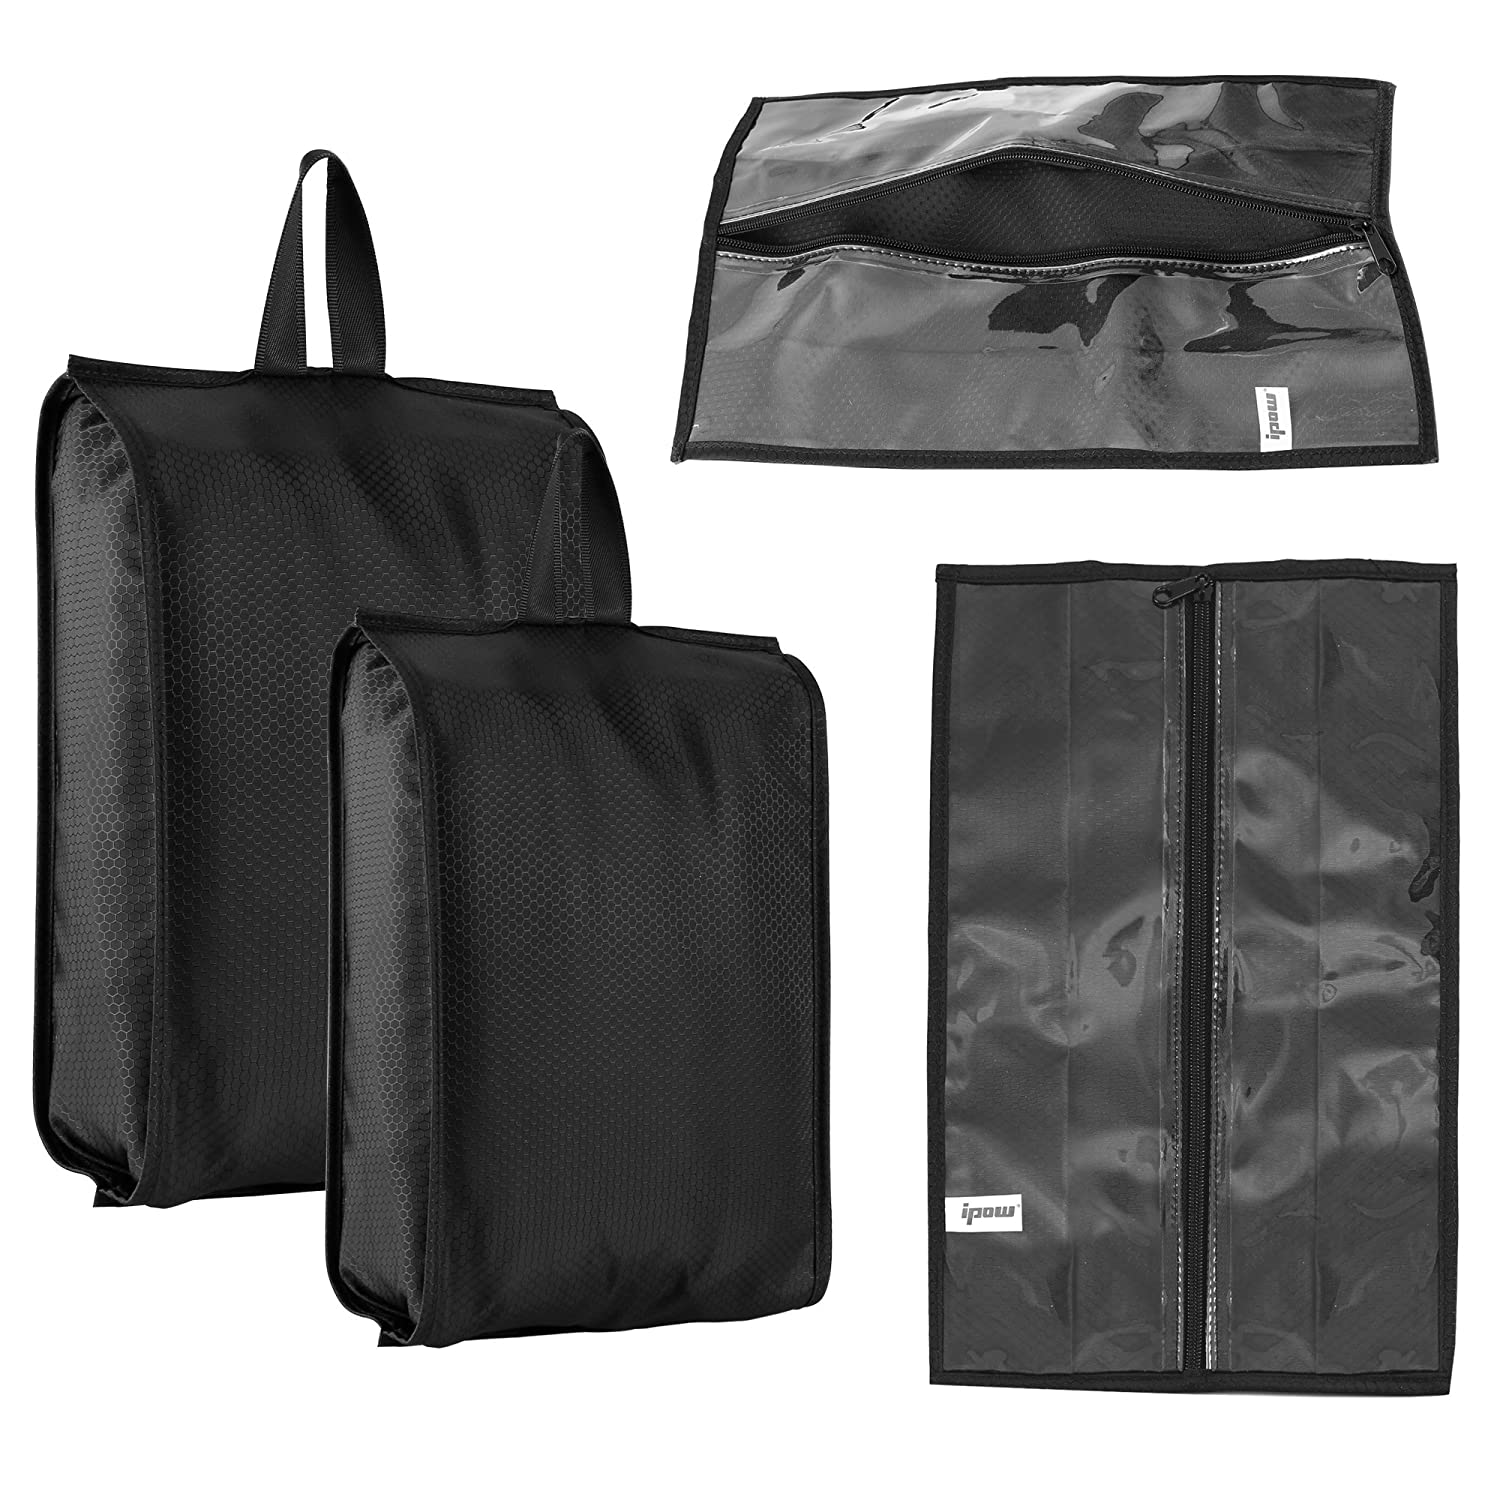 4 Pcs Ipow Portable Storage Shoes Bag Organizer Tote Waterproof Dust-Proof Holder with Zipper for Traveling, Camping, Home 2 Standard Size+2 X-Large Size,Transparent Window Design(Black)